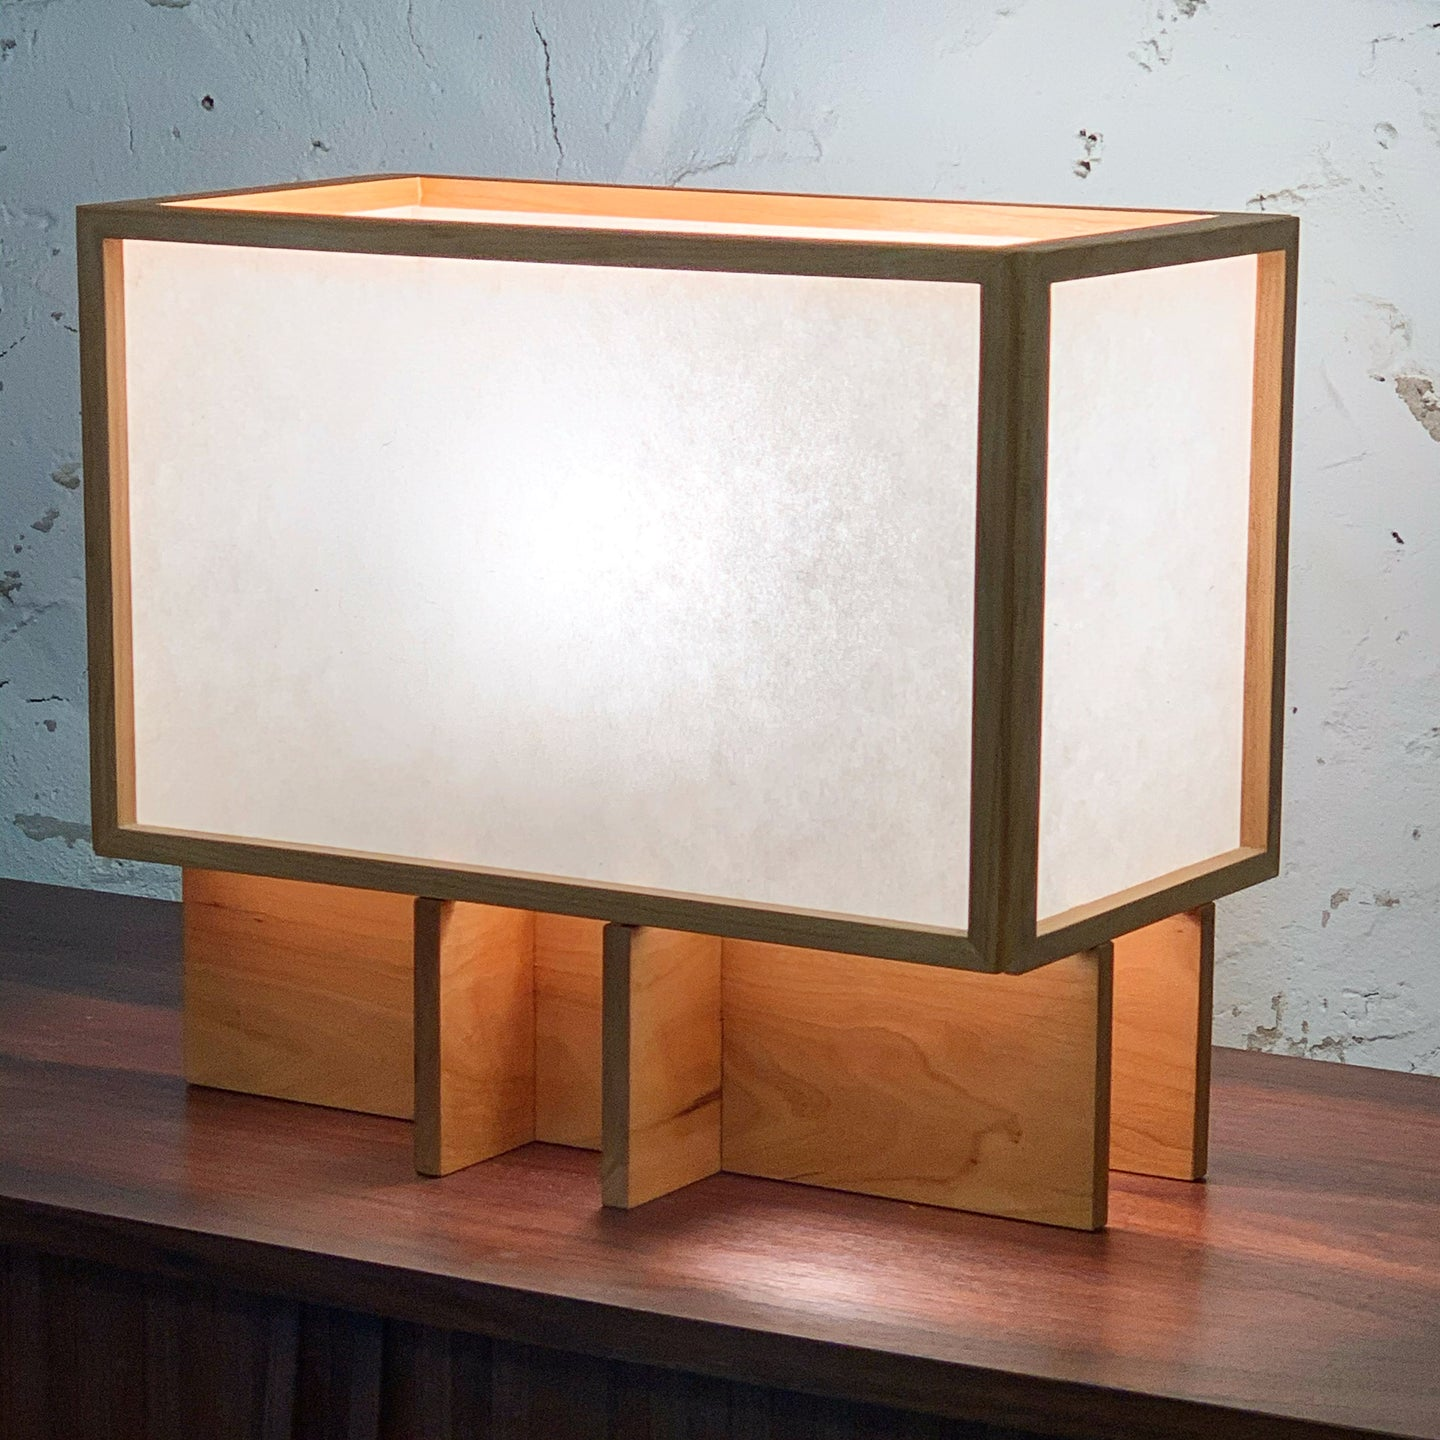 Table lantern *built to order* free shipping in mainland USA